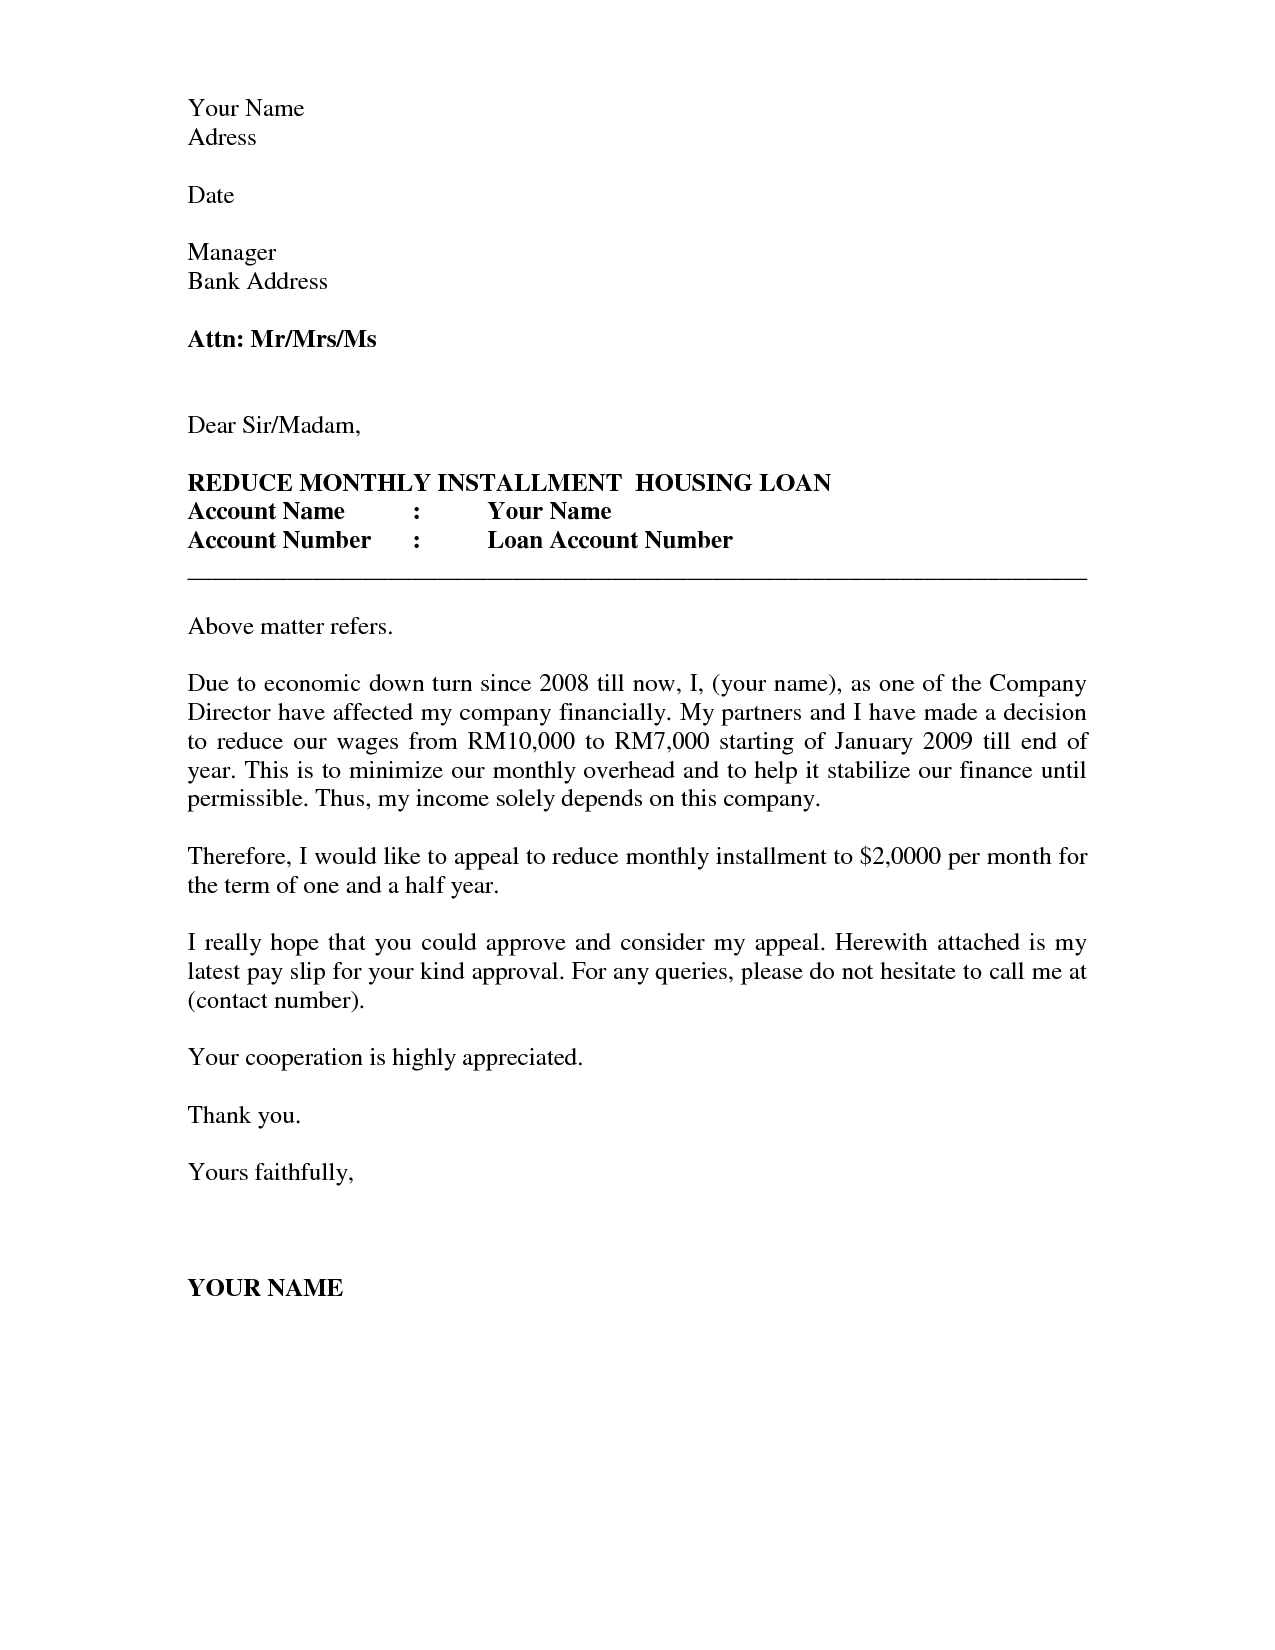 Business Appeal Letter - A letter of appeal should be ...